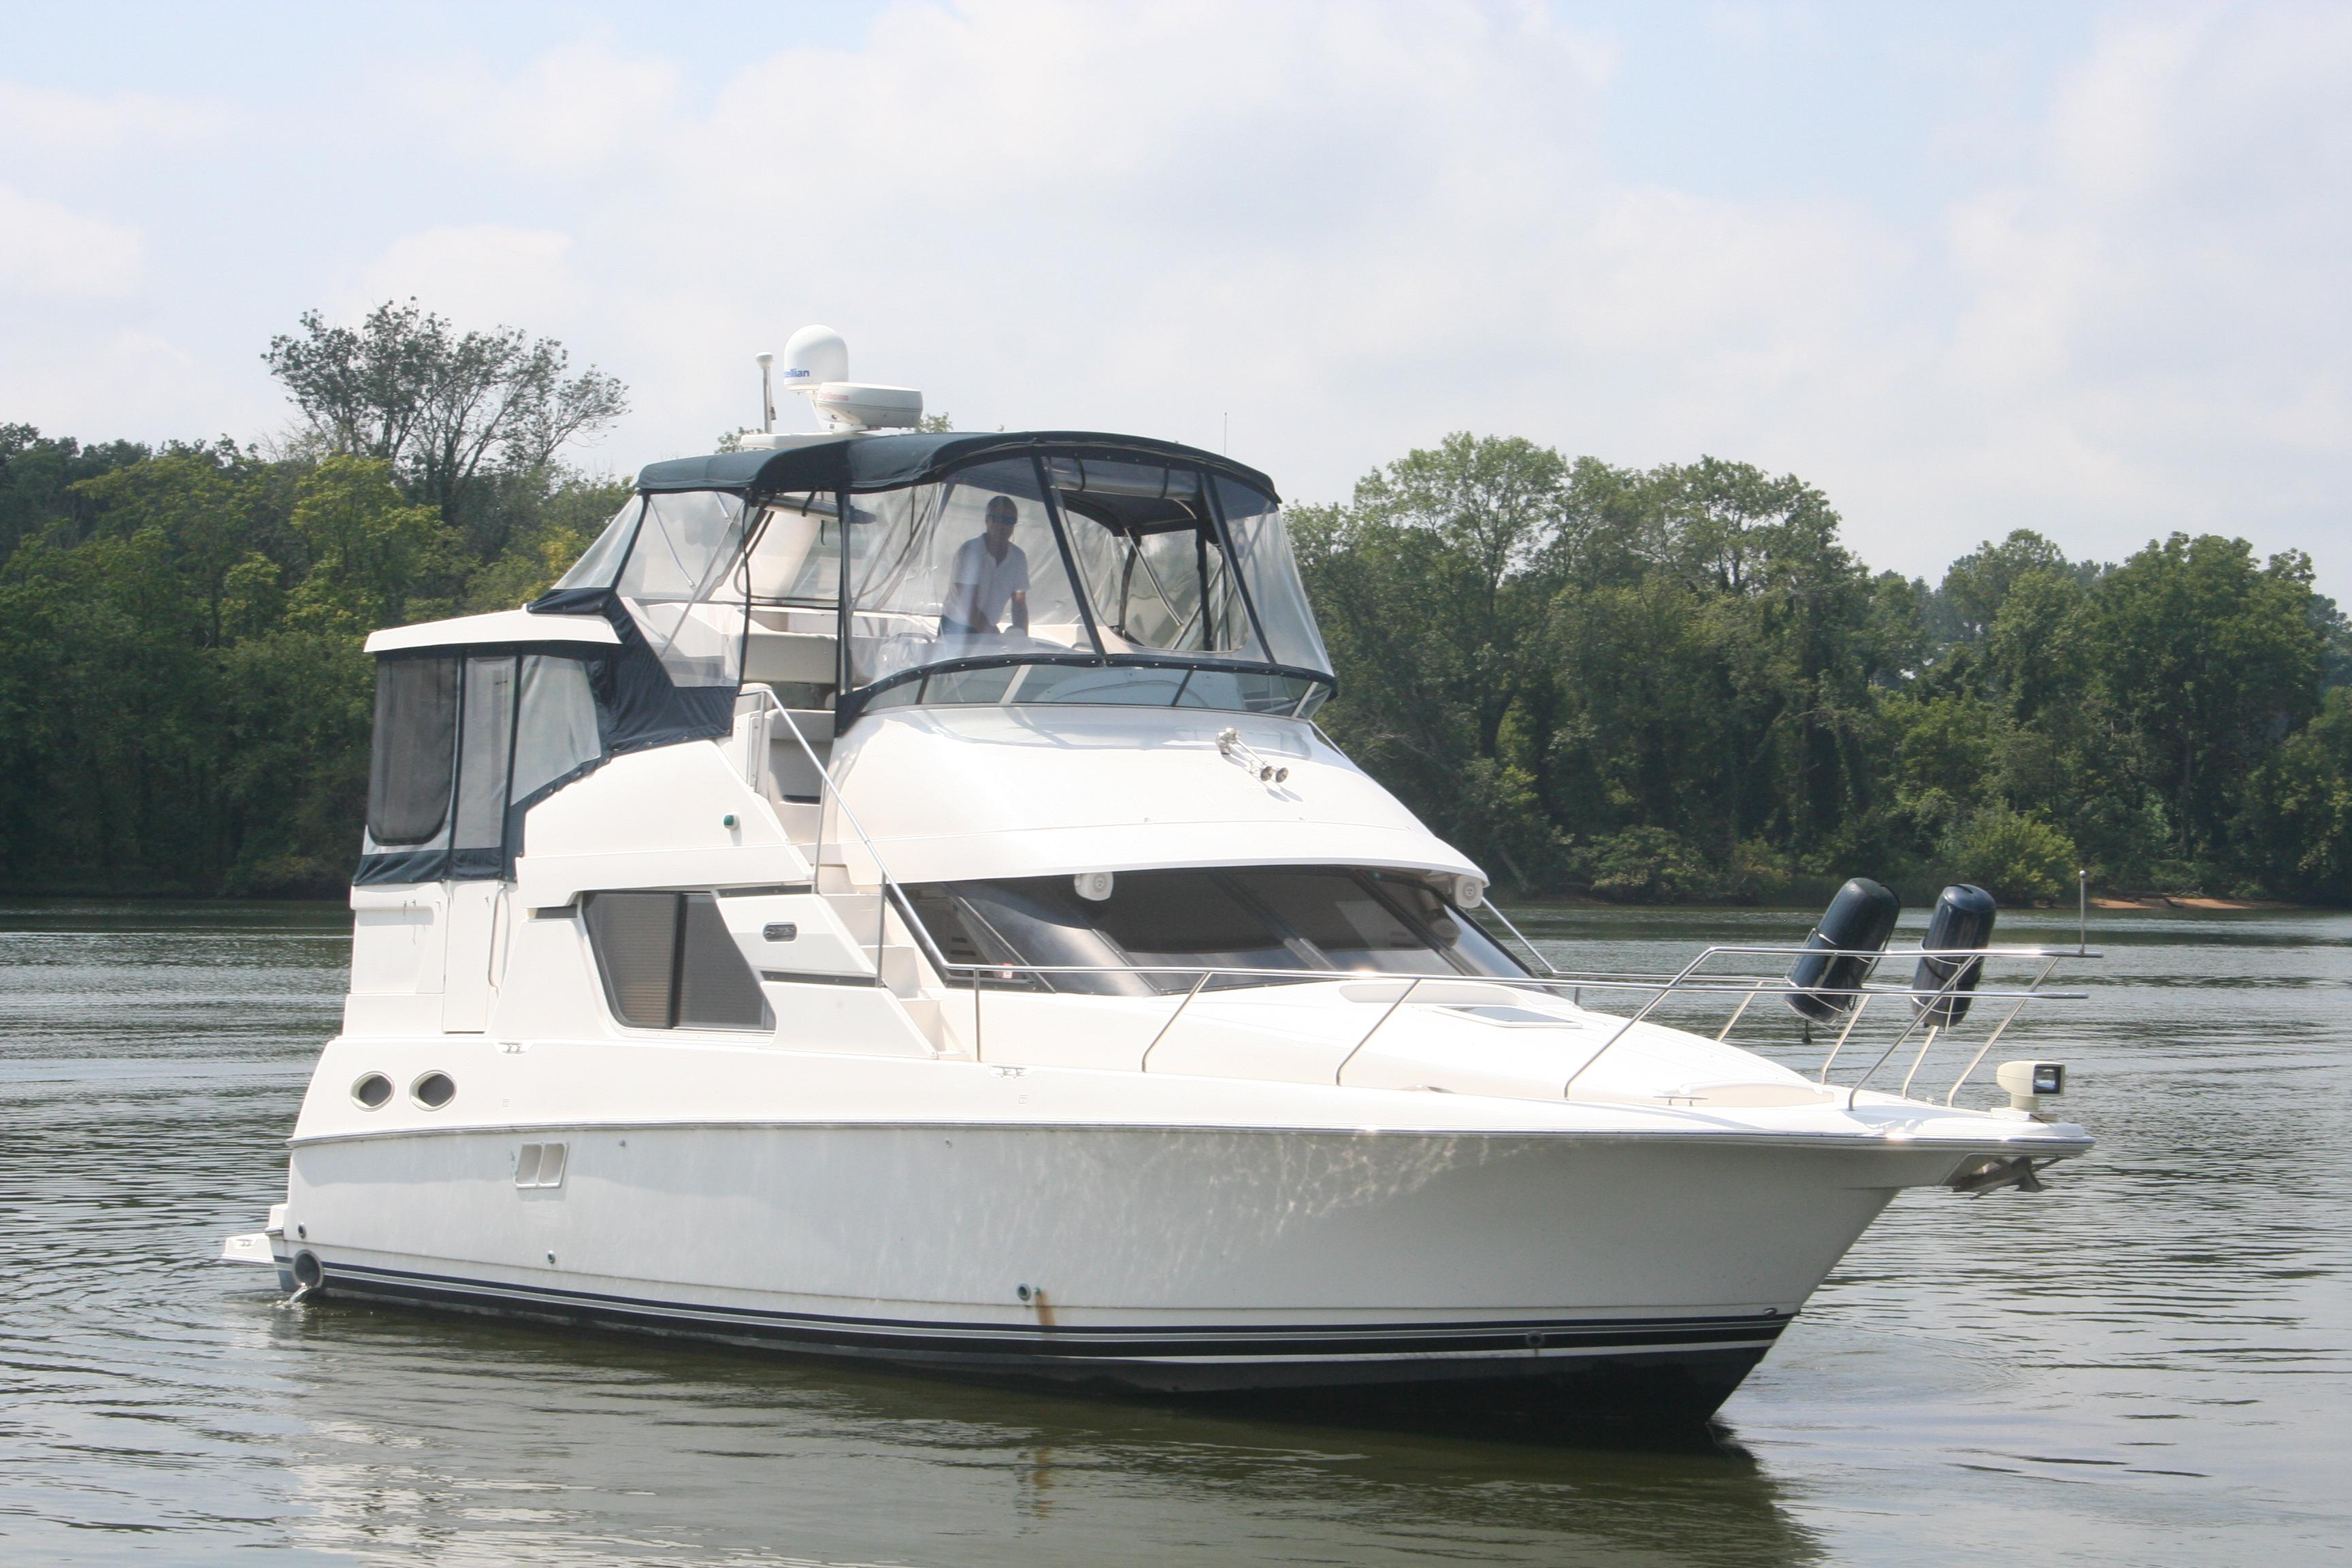 2001 Silverton 392 Motor Yacht Power Boat For Sale Wwwyachtworldcom